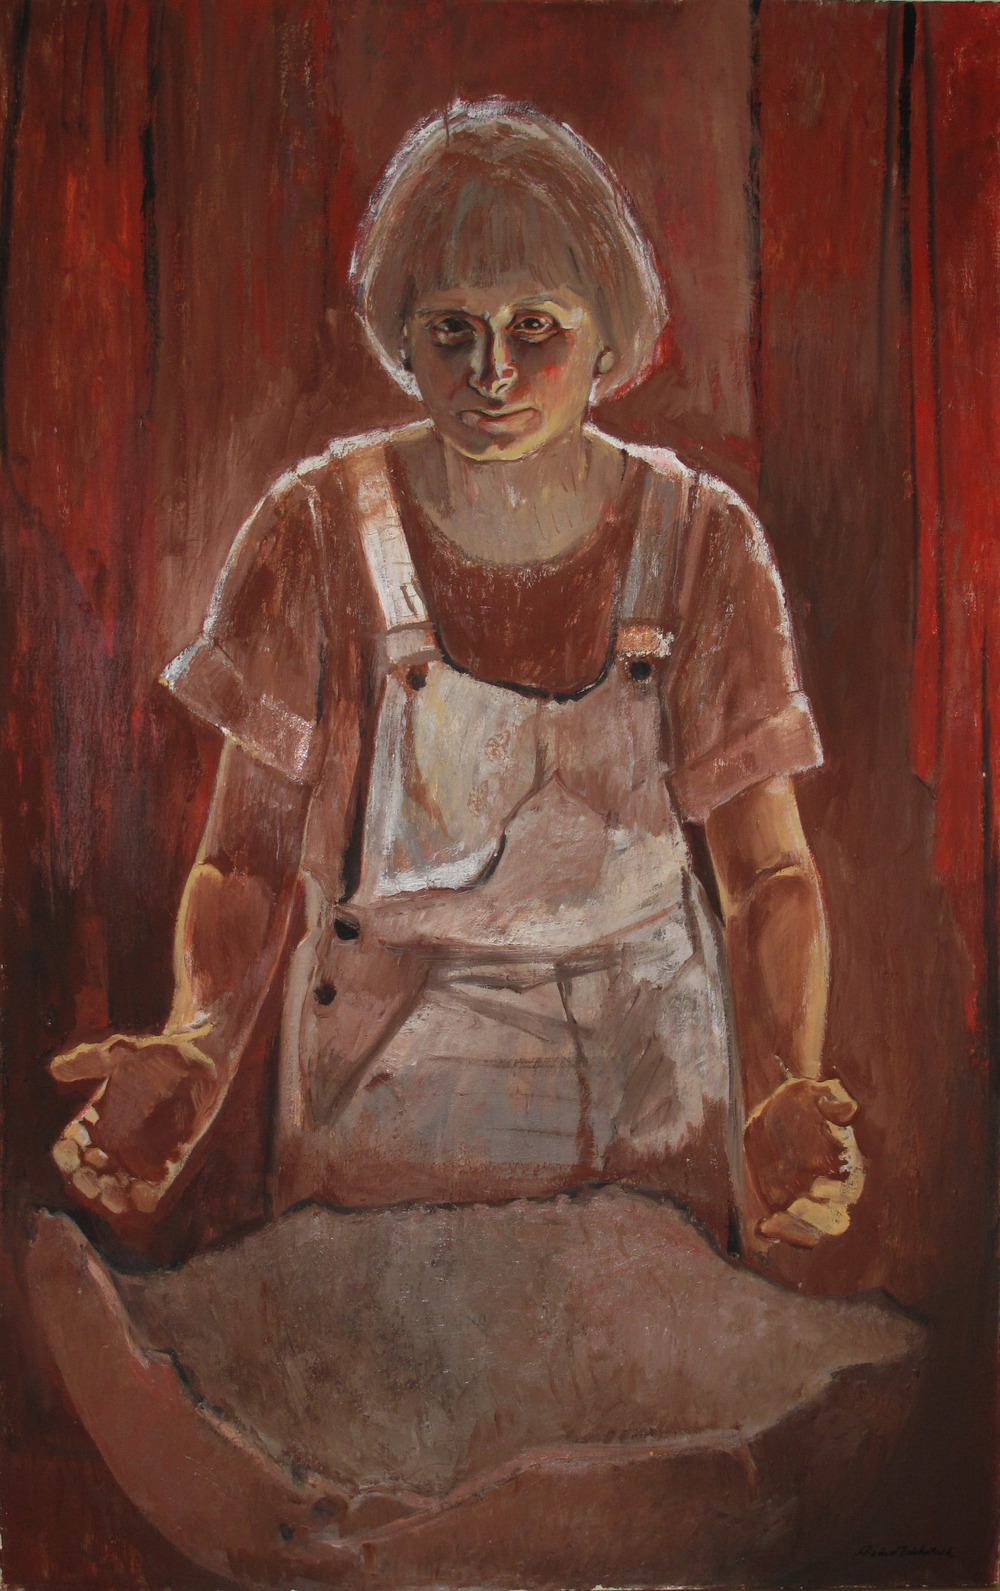 5da(0) -The Vessel (Portrait of Betty),oil, wax on linen, 65x41 in. 2004.jpg